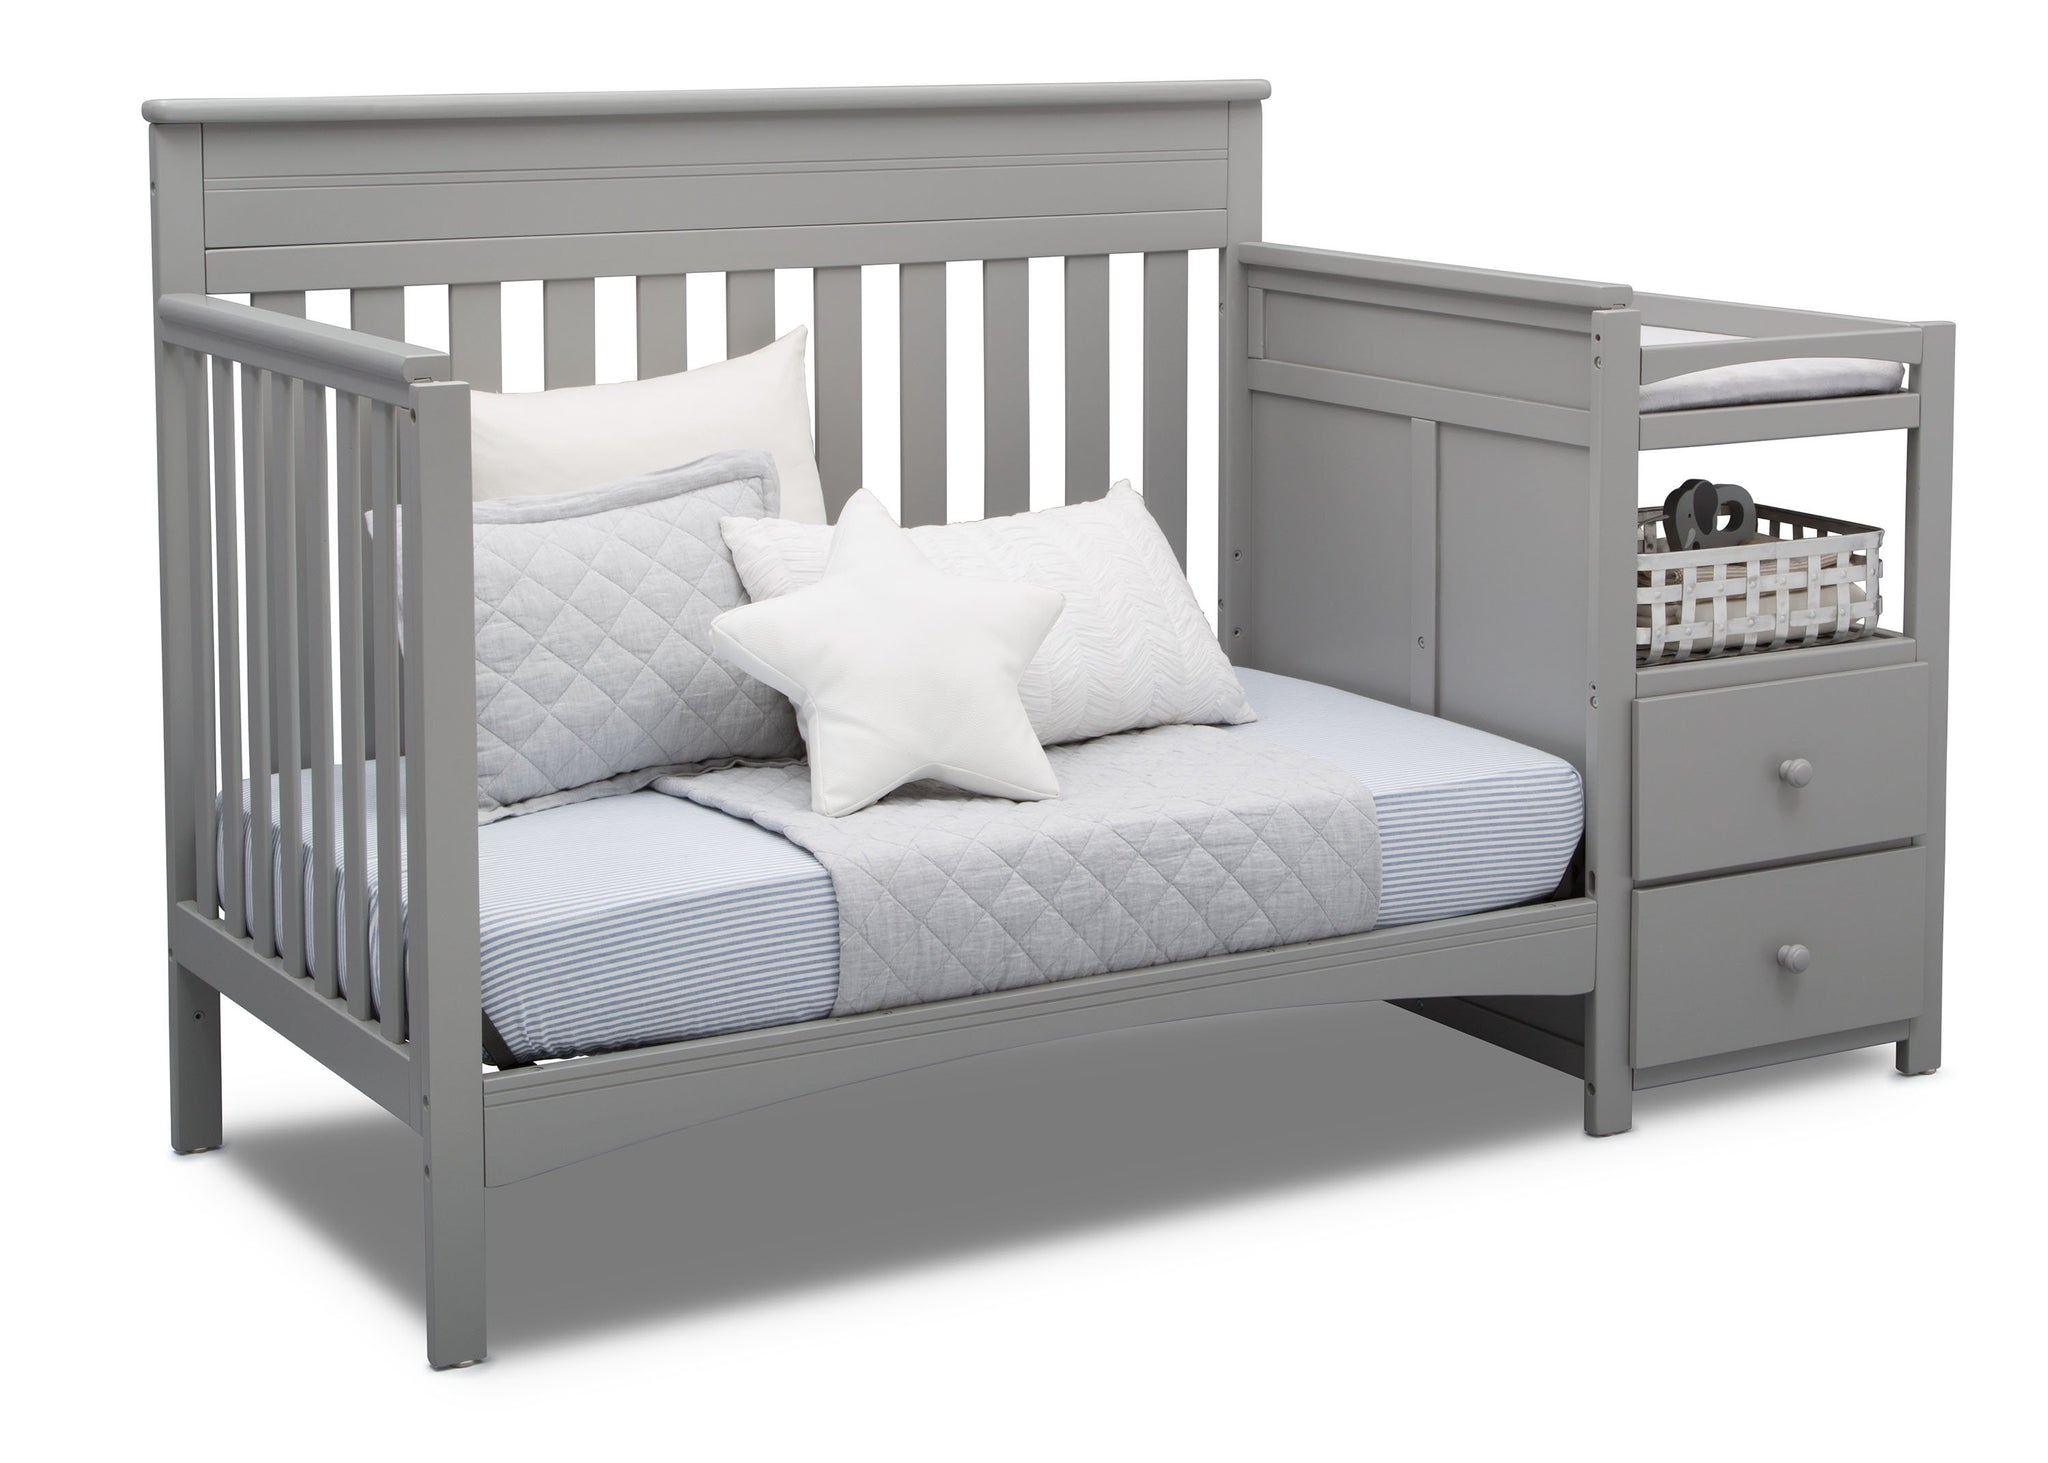 Delta Children Grey (026) Presley Convertible Crib N Changer (530260), Day Bed, a5a